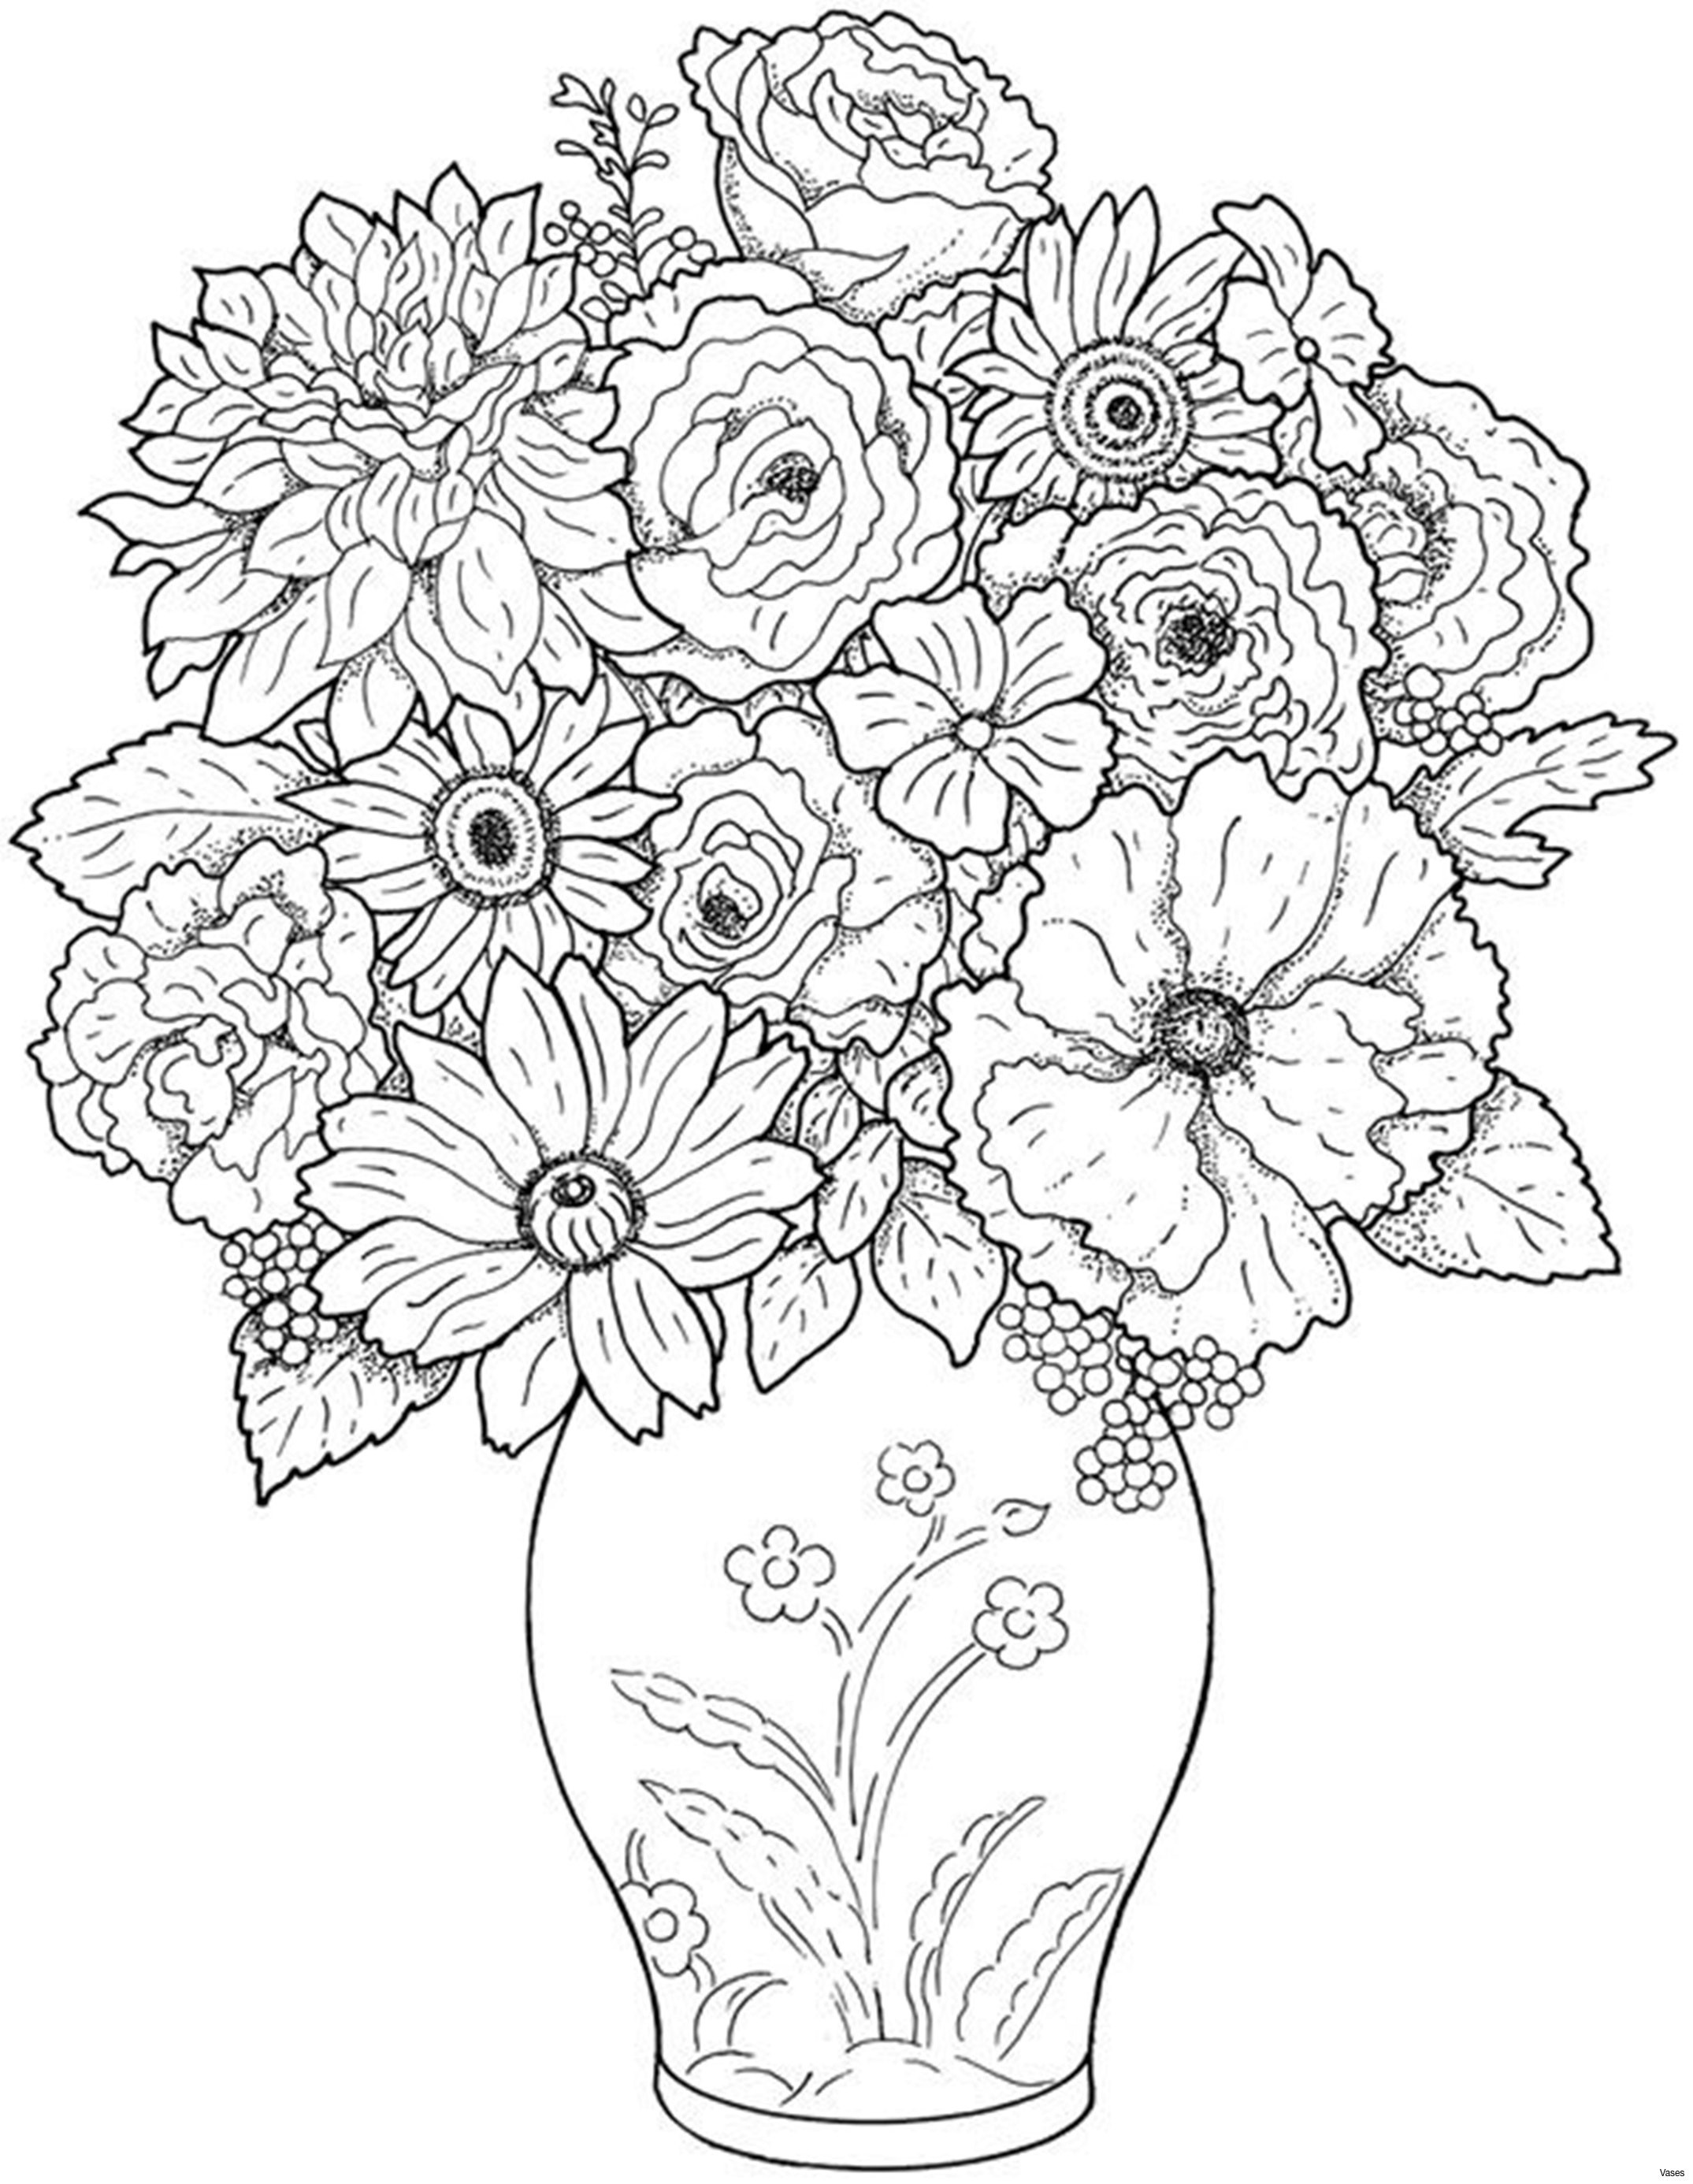 flower vase store of new gray flowers yepigames me in cool vases flower vase coloring page pages flowers in a top i 0d